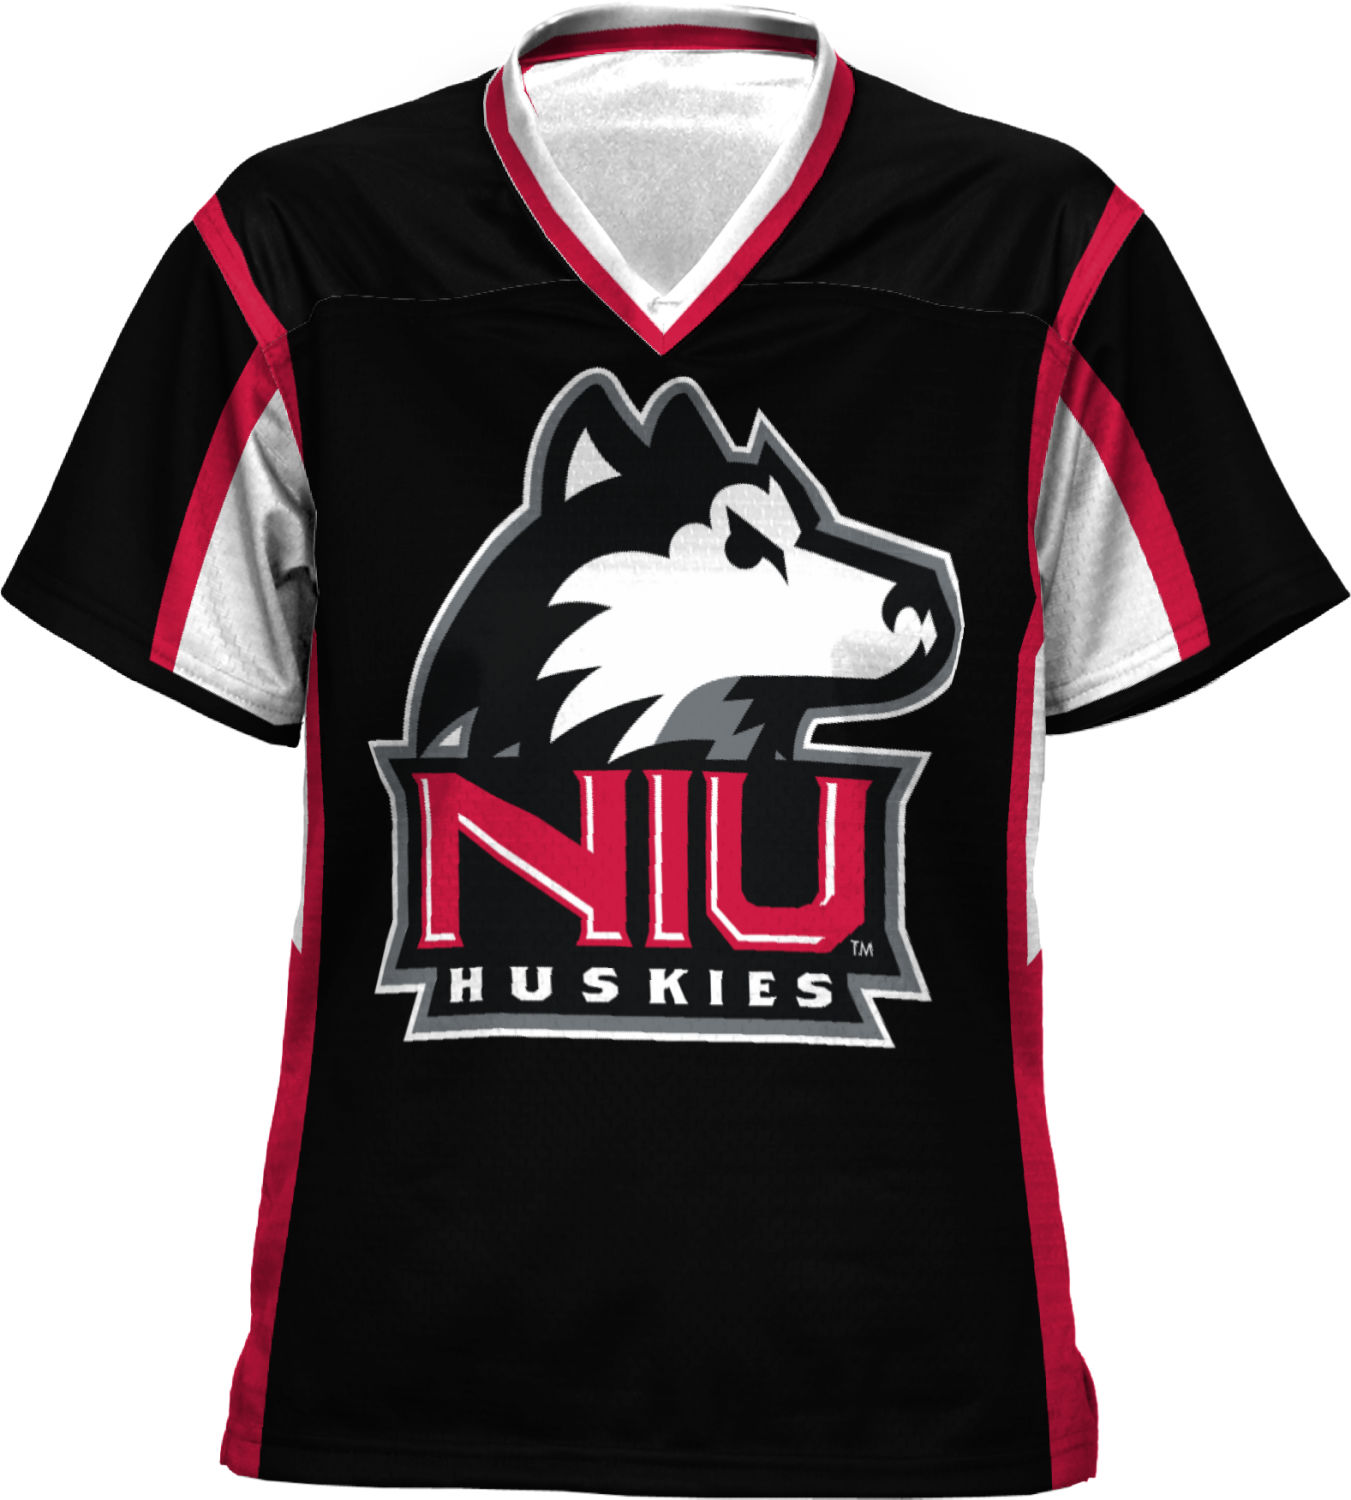 new product 24b44 96be1 ProSphere Women's Northern Illinois University Scramble Football Fan Jersey